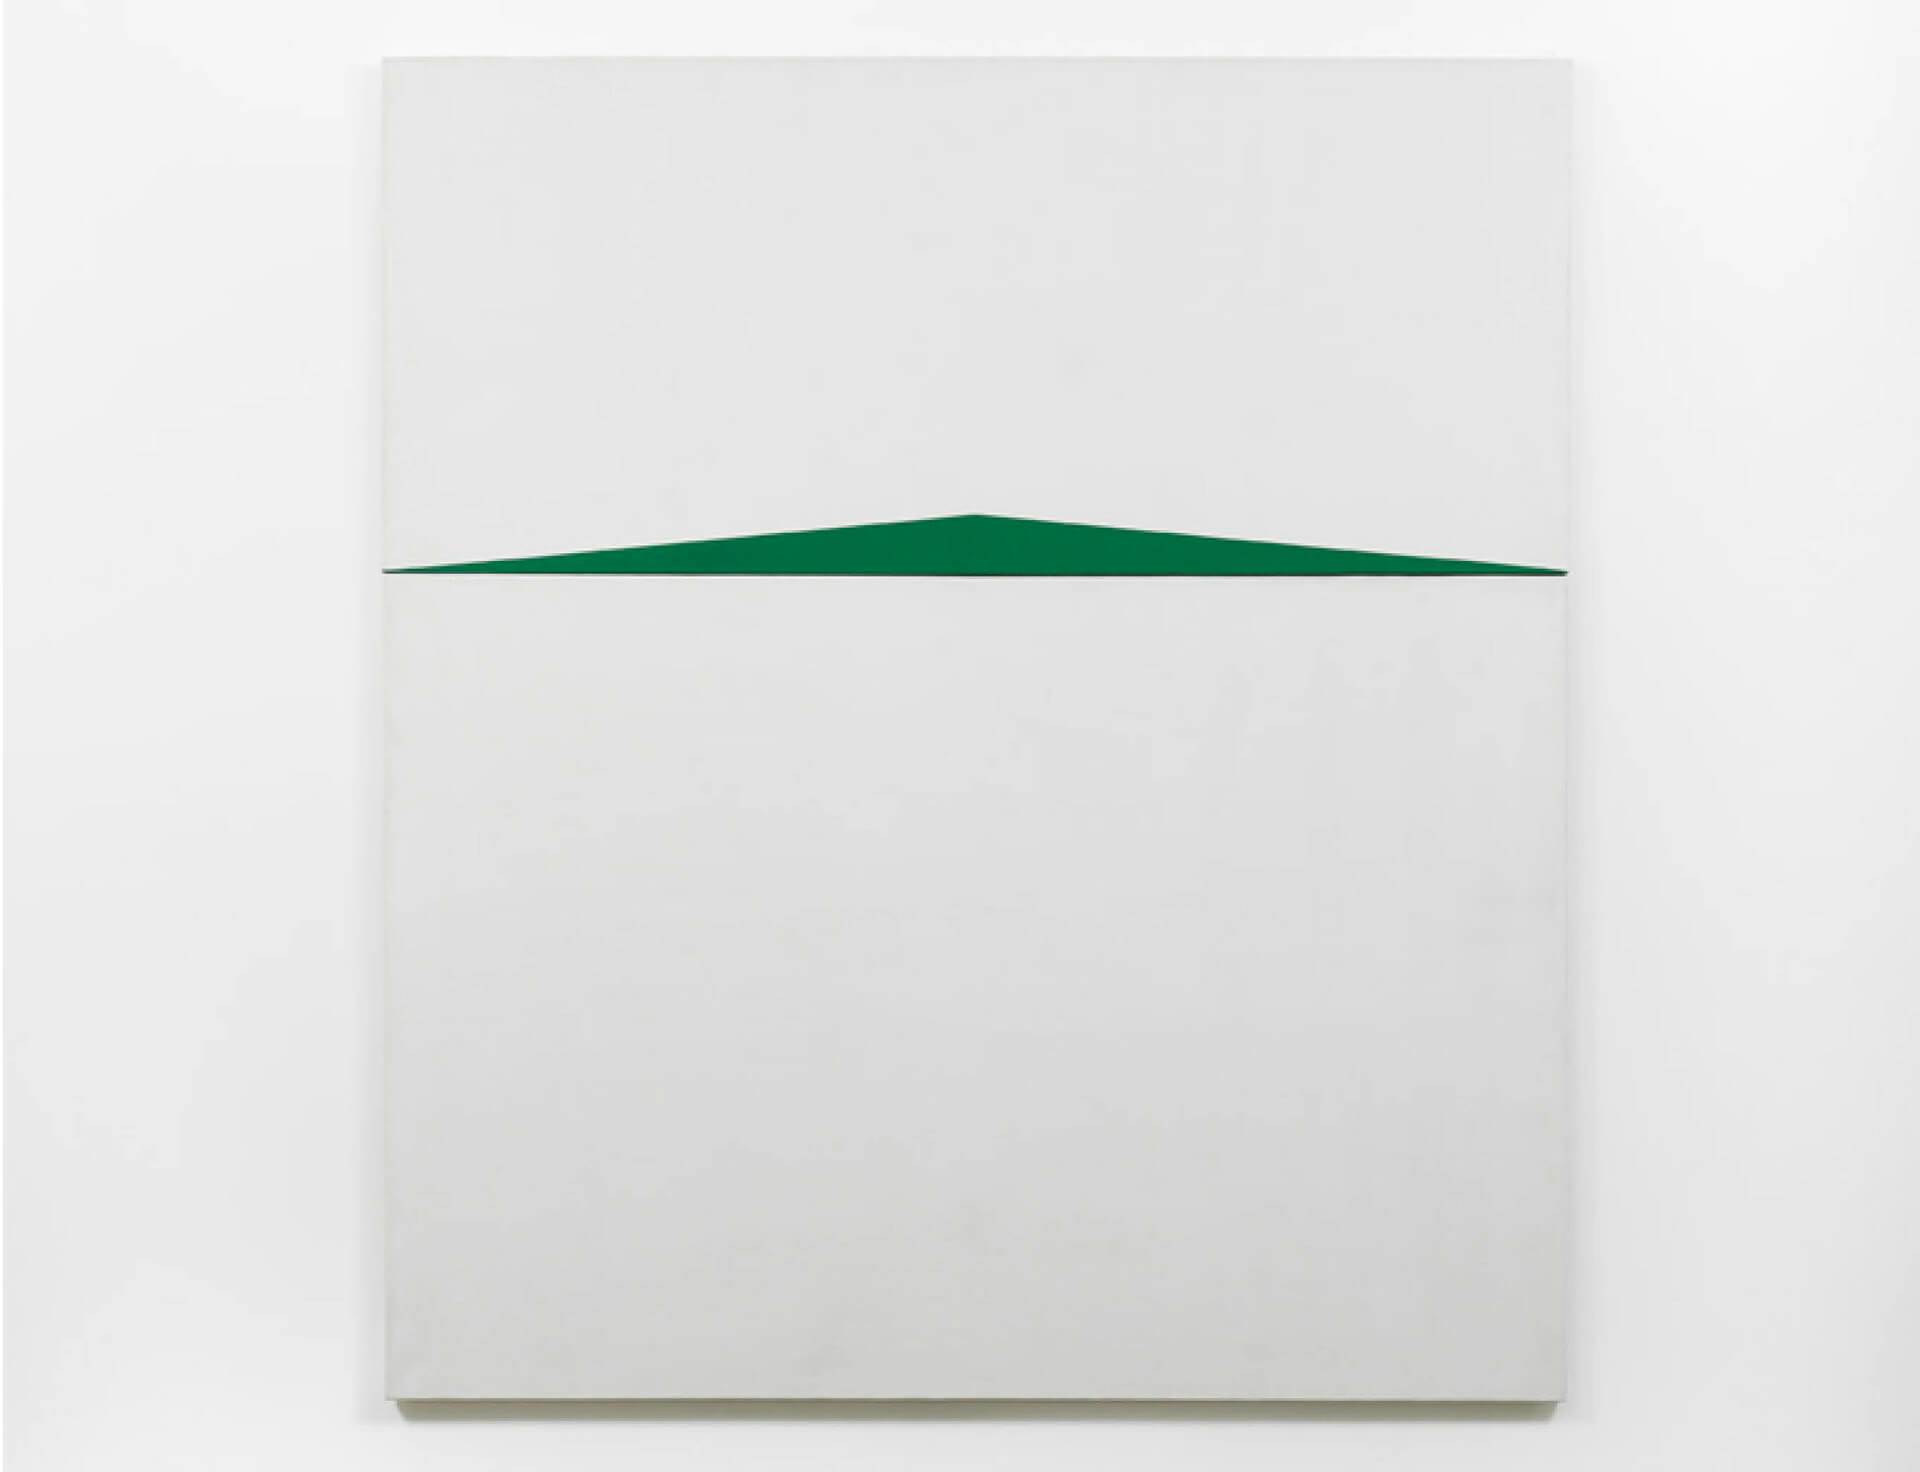 'Carmen Herrera: Lines of Sight' at the Whitney Museum of American Art